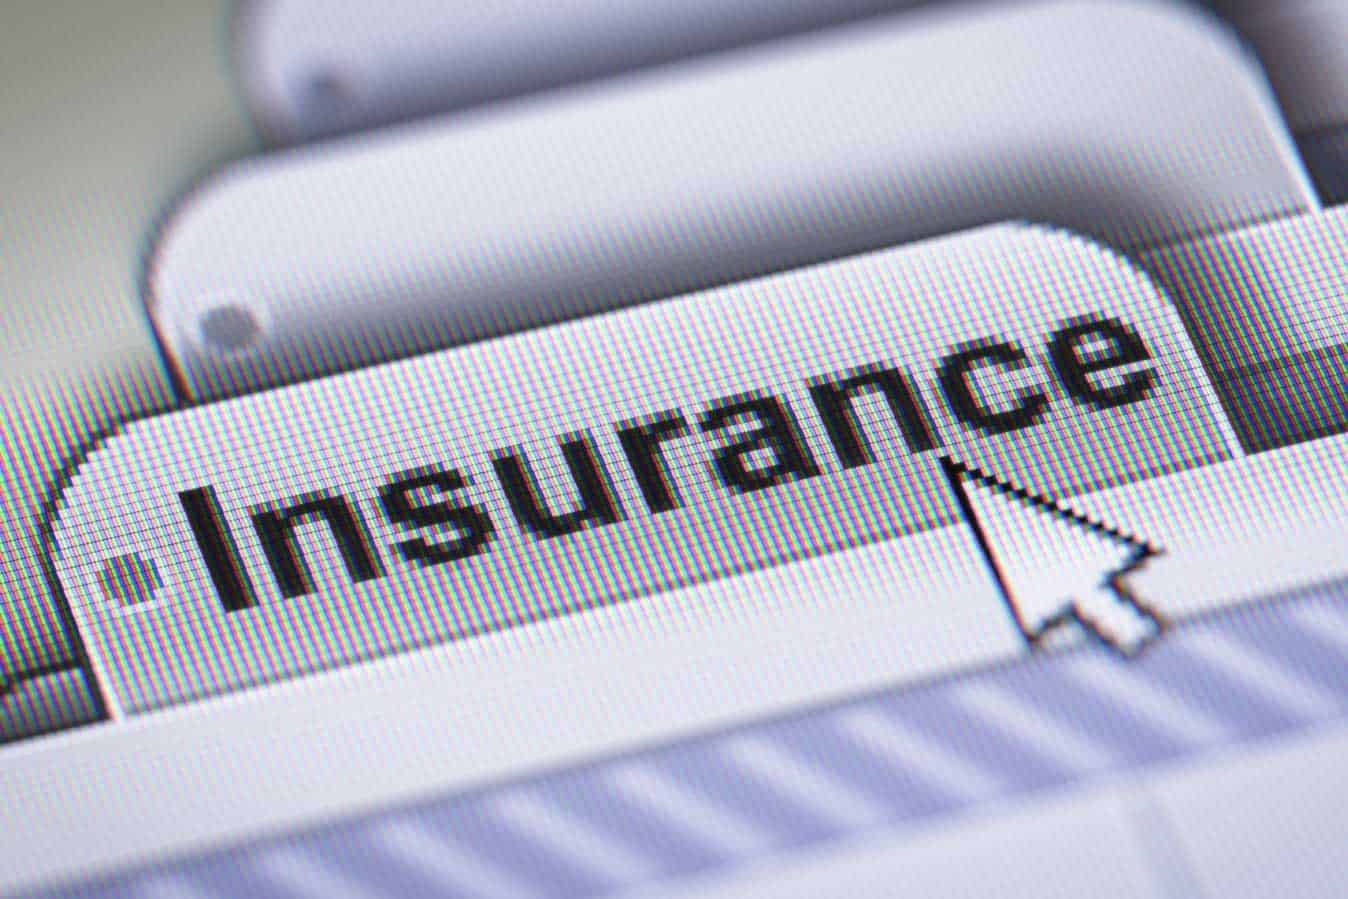 The-broad-value-of-professional-indemnity-insurance